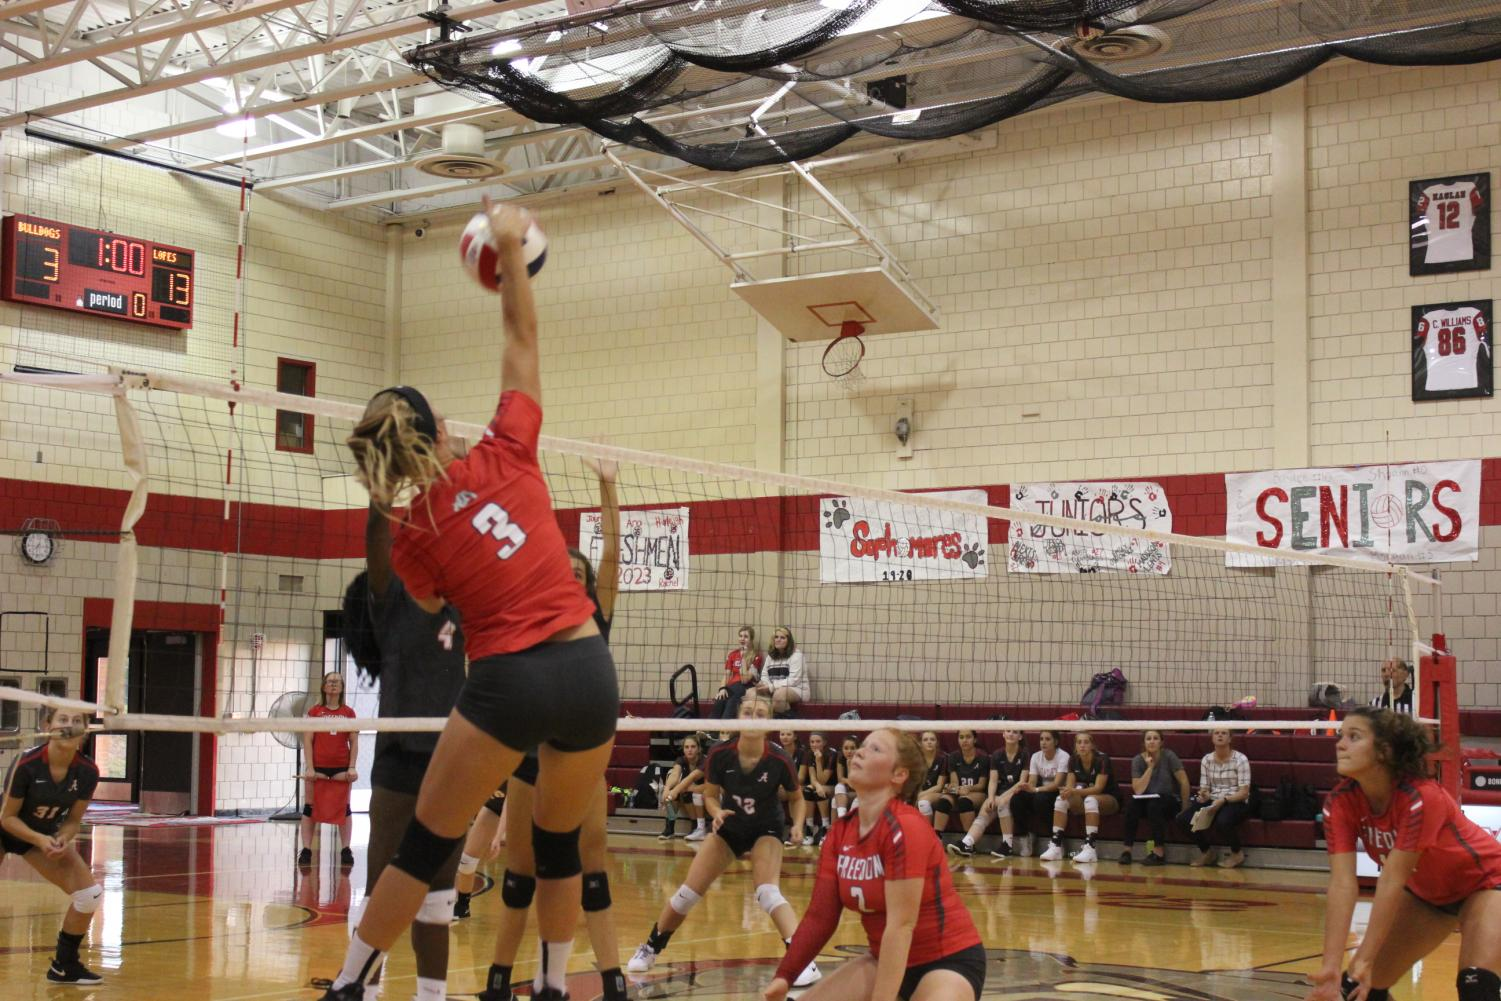 Senior Morgan Swab spikes the volleyball back to the Avonworth team during the second set of the Sept. 4 game.